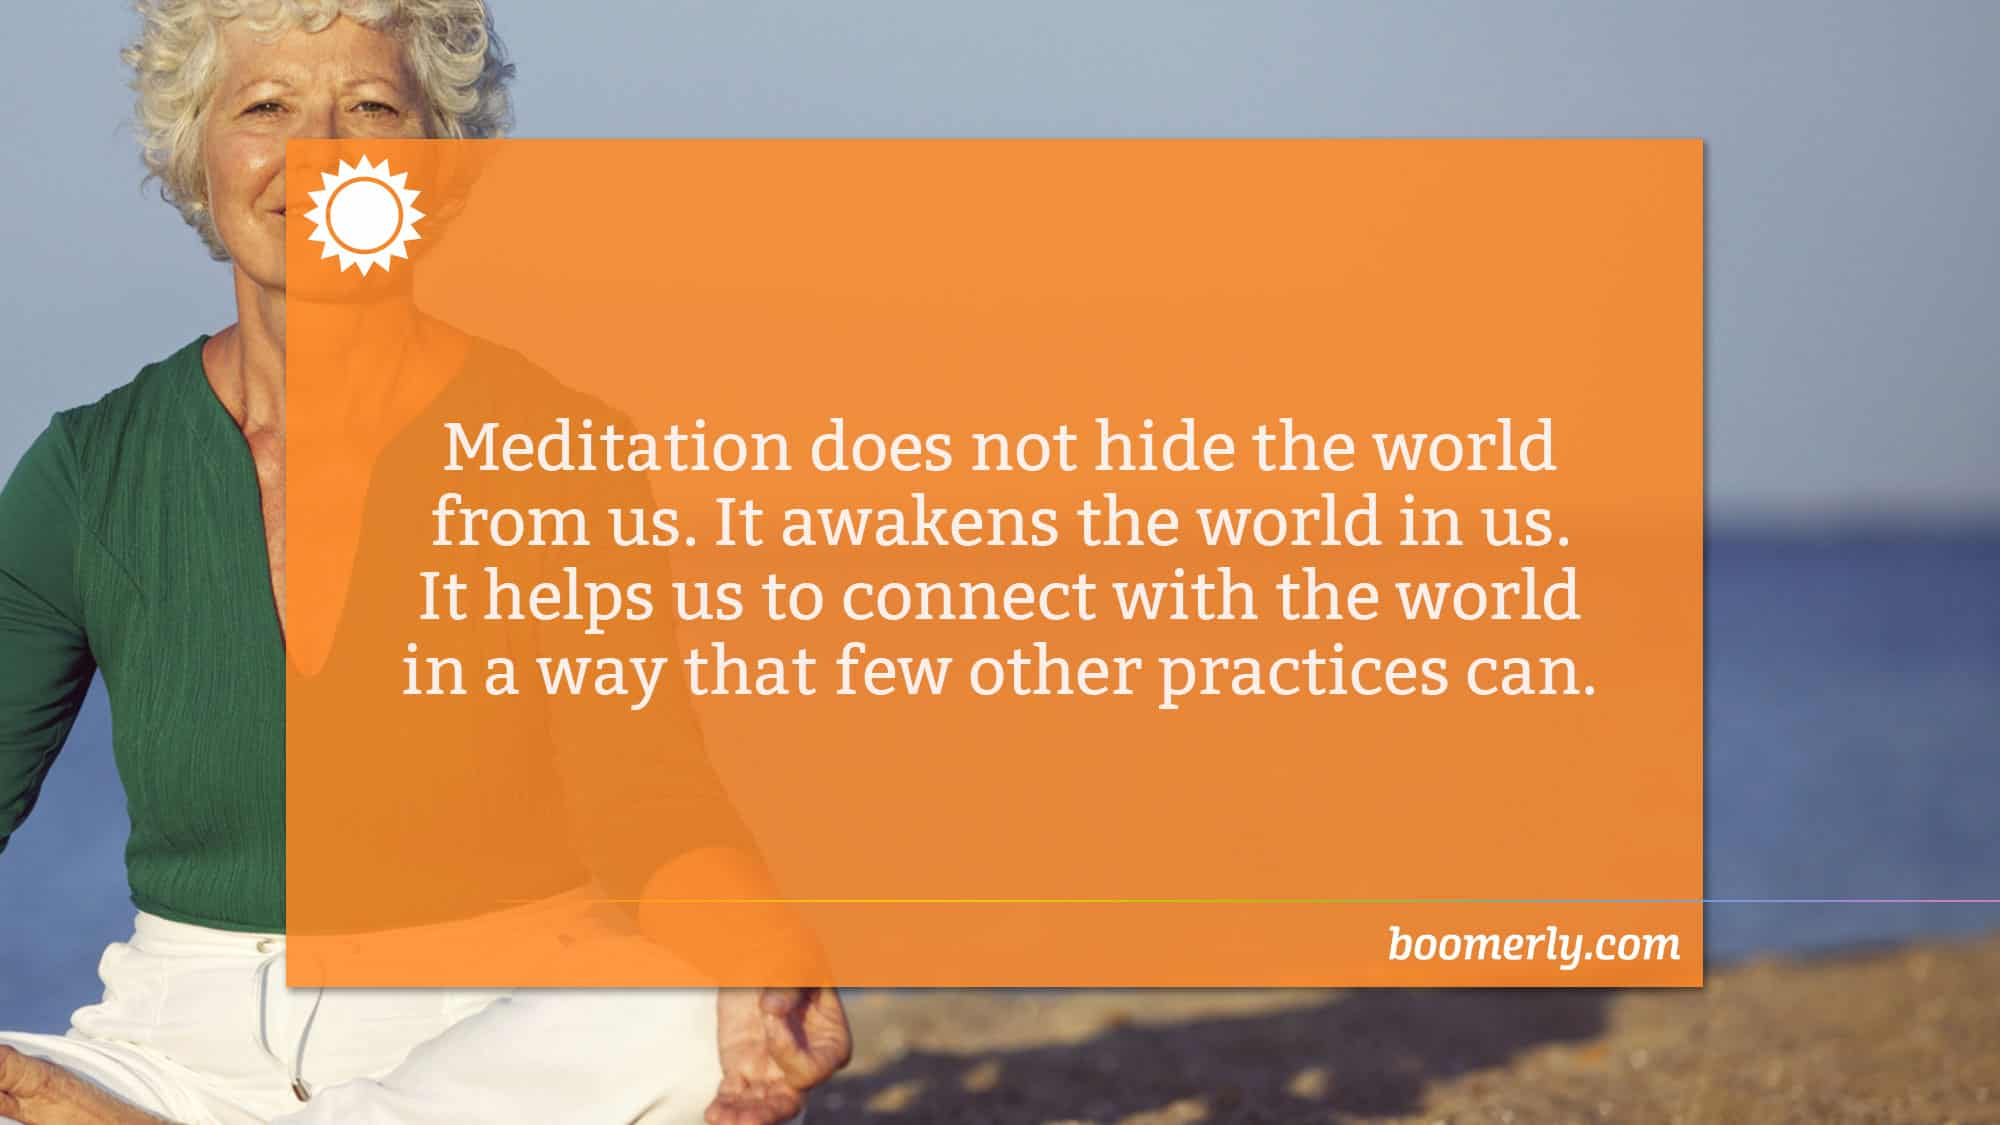 Meditation is a key to happiness - Meditation does not hide the world from us. It awakens the world in us. It helps us to connect with the world in a way that few other practices can.